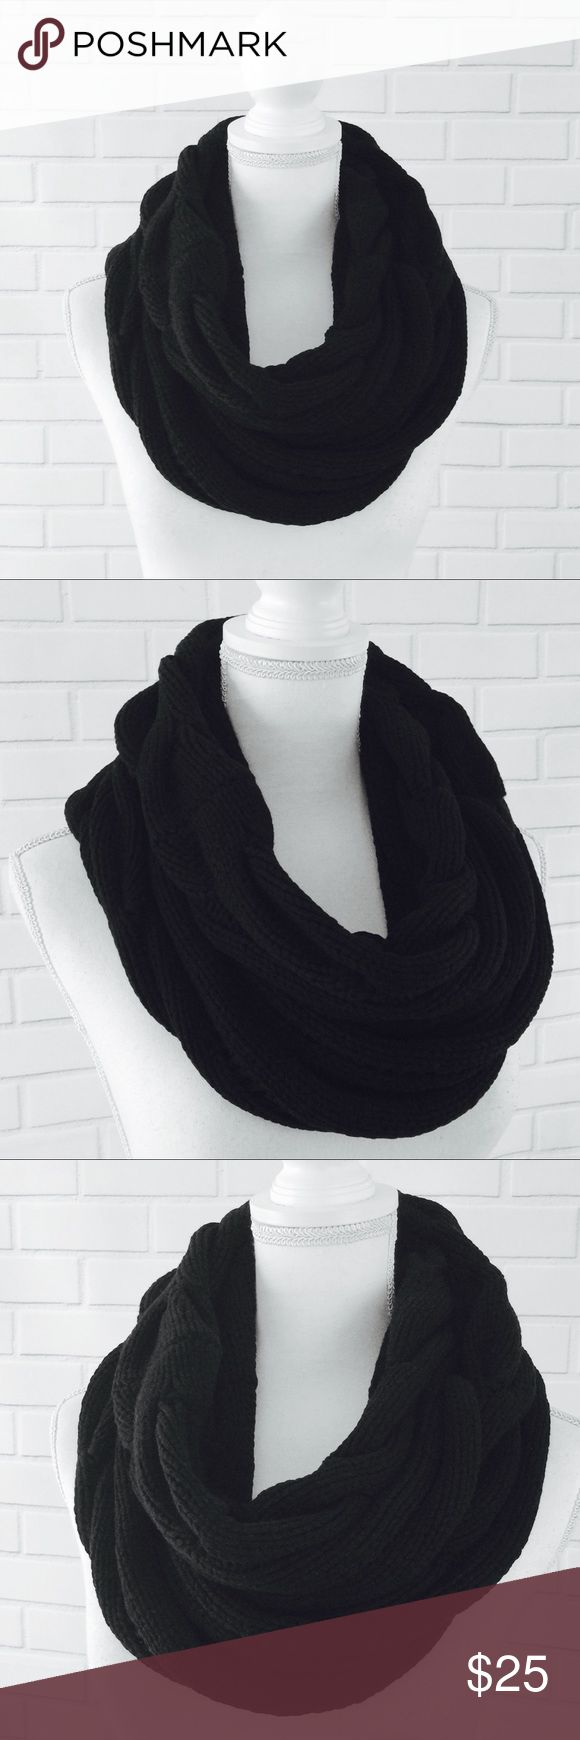 """Michael Stars Wool Cashmere Chunky Infinity Scarf ▫️Brand: Michael Stars ▫️Size: One Size ▫️Color: Black ▫️Material: Wool/Cashmere  ▫️Condition: Preowned ▫️Flaws: NONE  ▫️Measurements Laying Flat: •Width: 11"""" •Length: 31"""" •Shipping Weight: 6oz  ▪️NO Trade/Hold ▪️Next Day Shipping ▪️Smoke Free/Kitty Friendly Home Michael Stars Accessories Scarves & Wraps"""